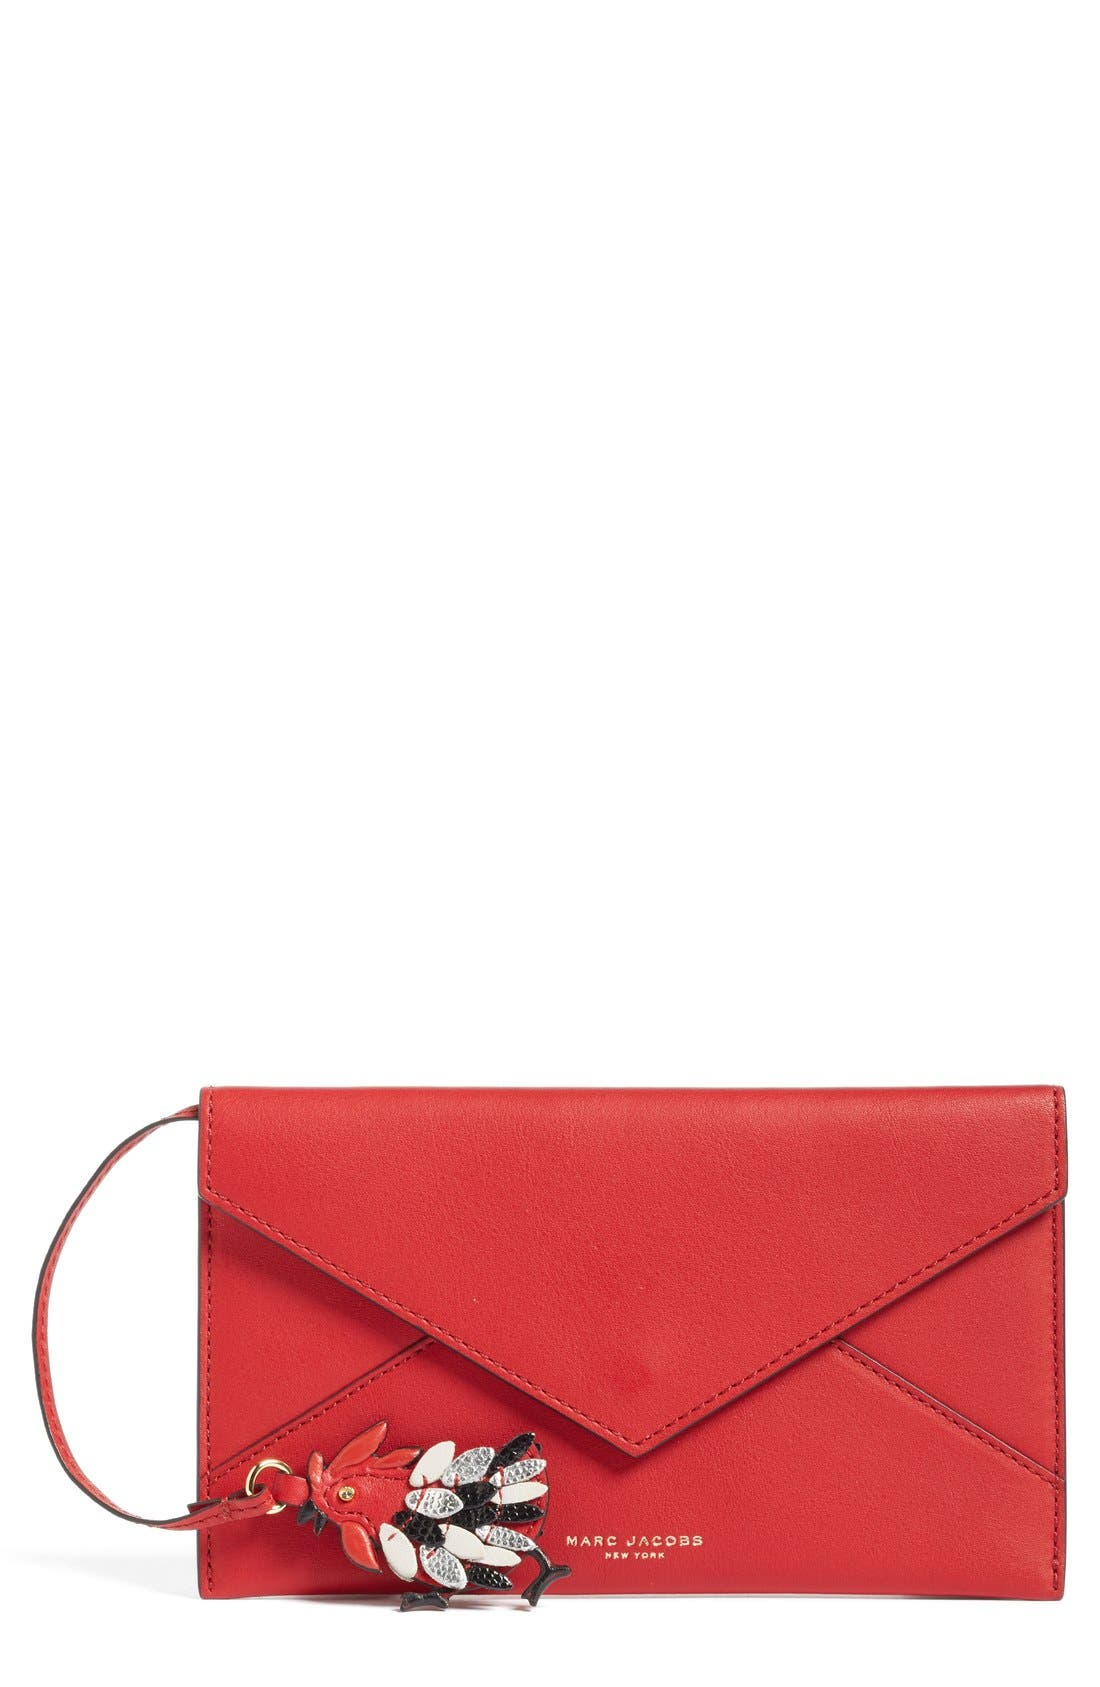 Alternate Image 1 Selected - MARC JACOBS Rooster Envelope Clutch